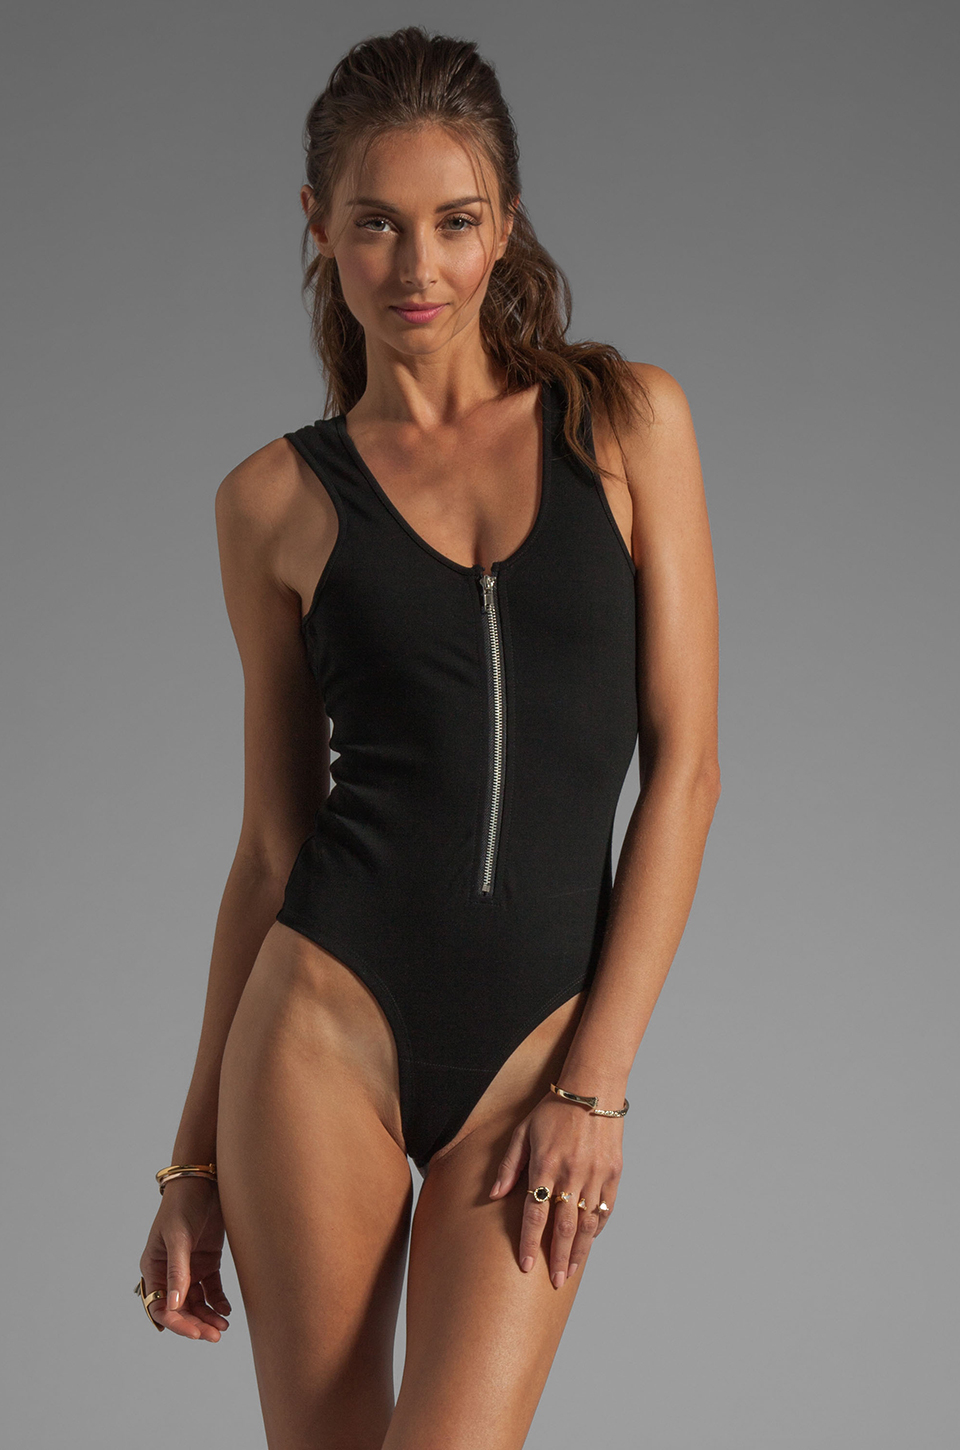 Bodysuits. Designer women's bodysuits present in a dynamic range of stylings, taking the apparel item from the street to the boudoir. Form-fitting, body-shaping utility variants flatter with a tight silhouette, showing off essential curvature while providing supreme comfort and ease of movement.